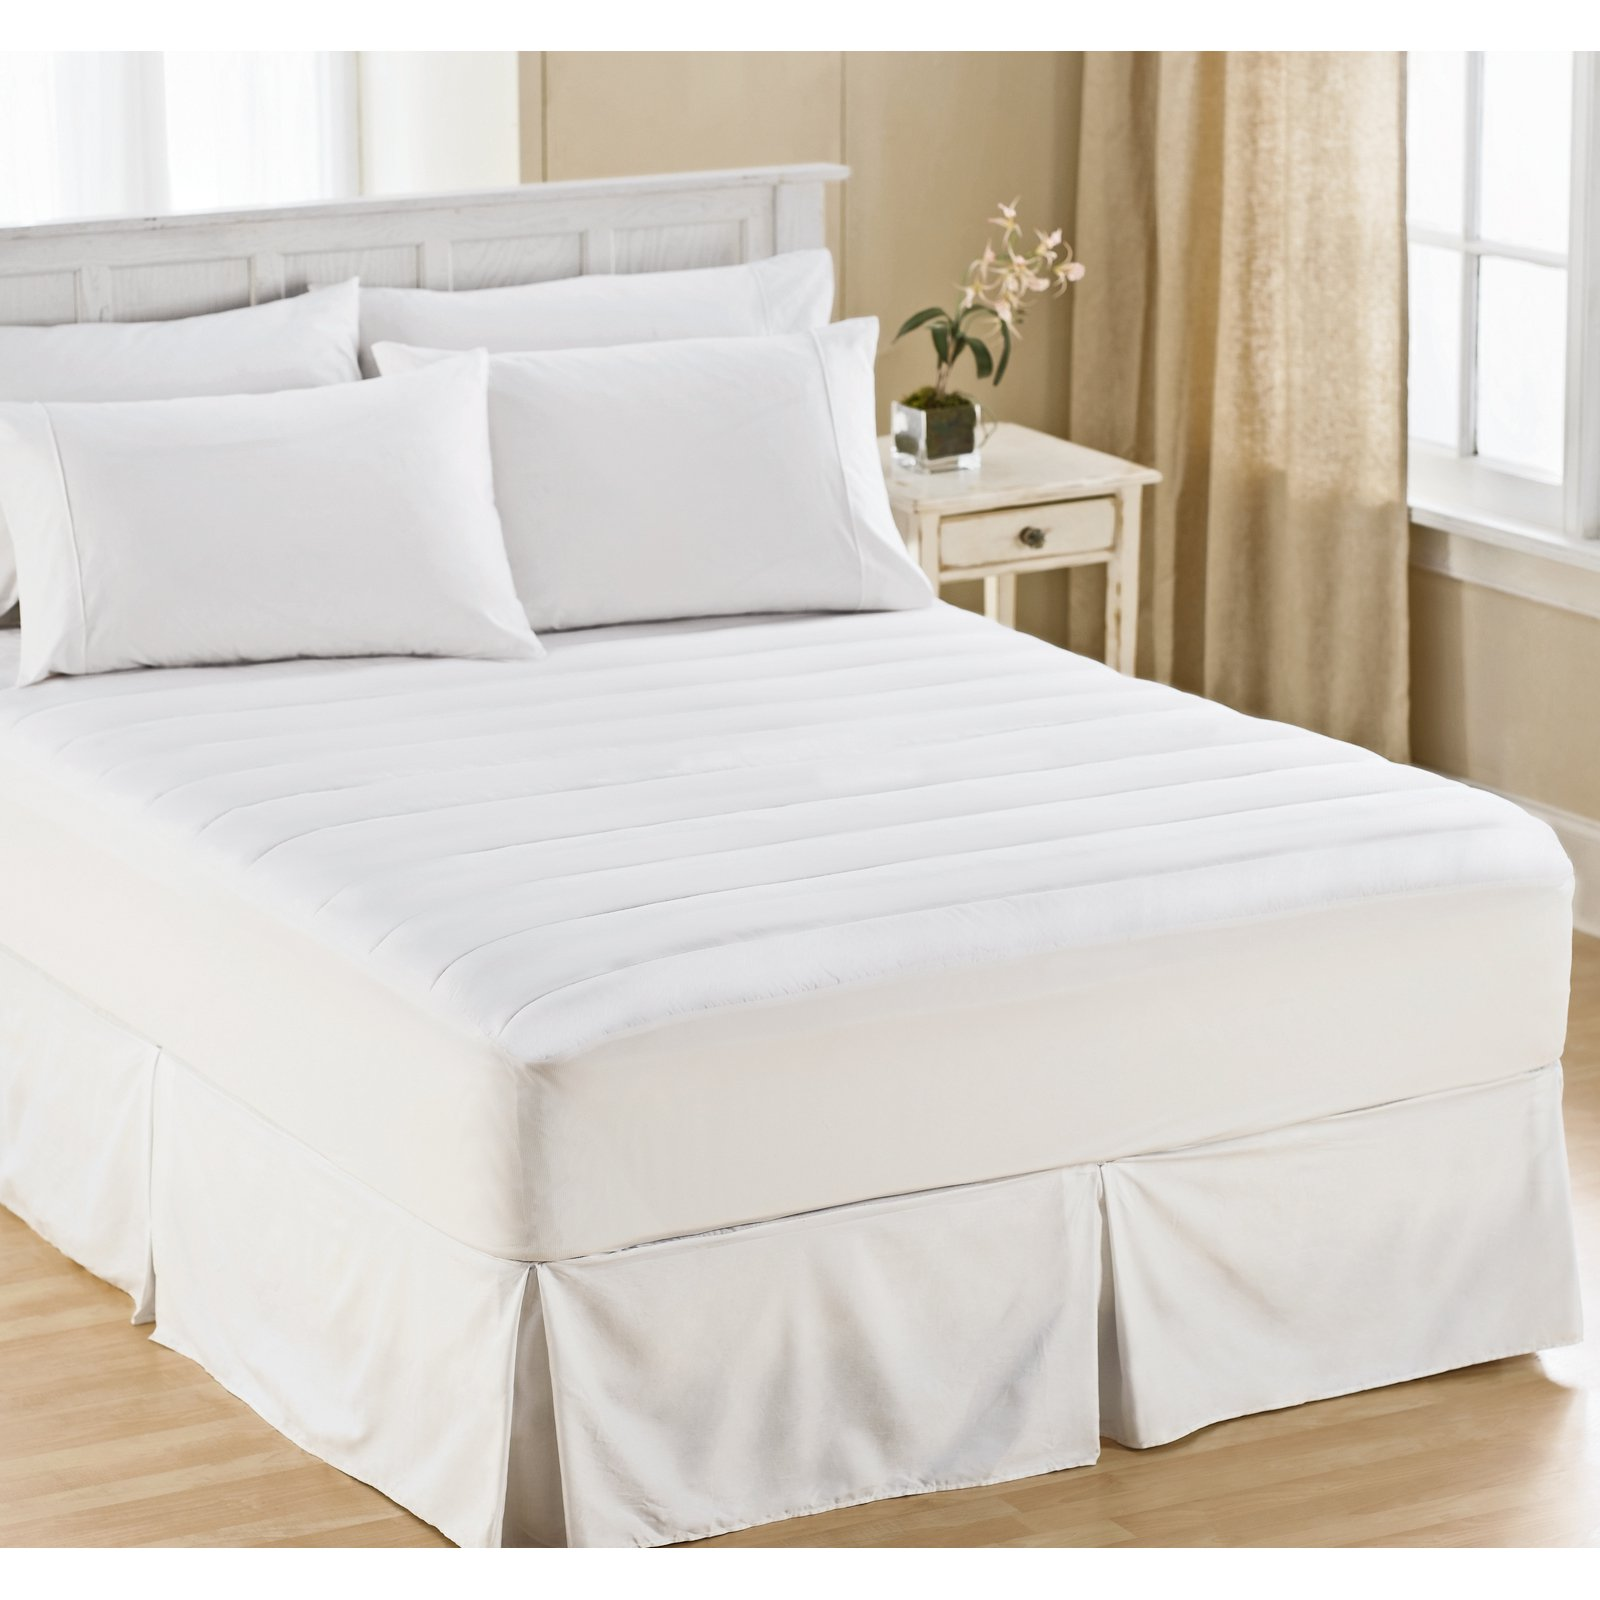 Wellrest Microfiber Mattress Pad by Perfect Fit Industries